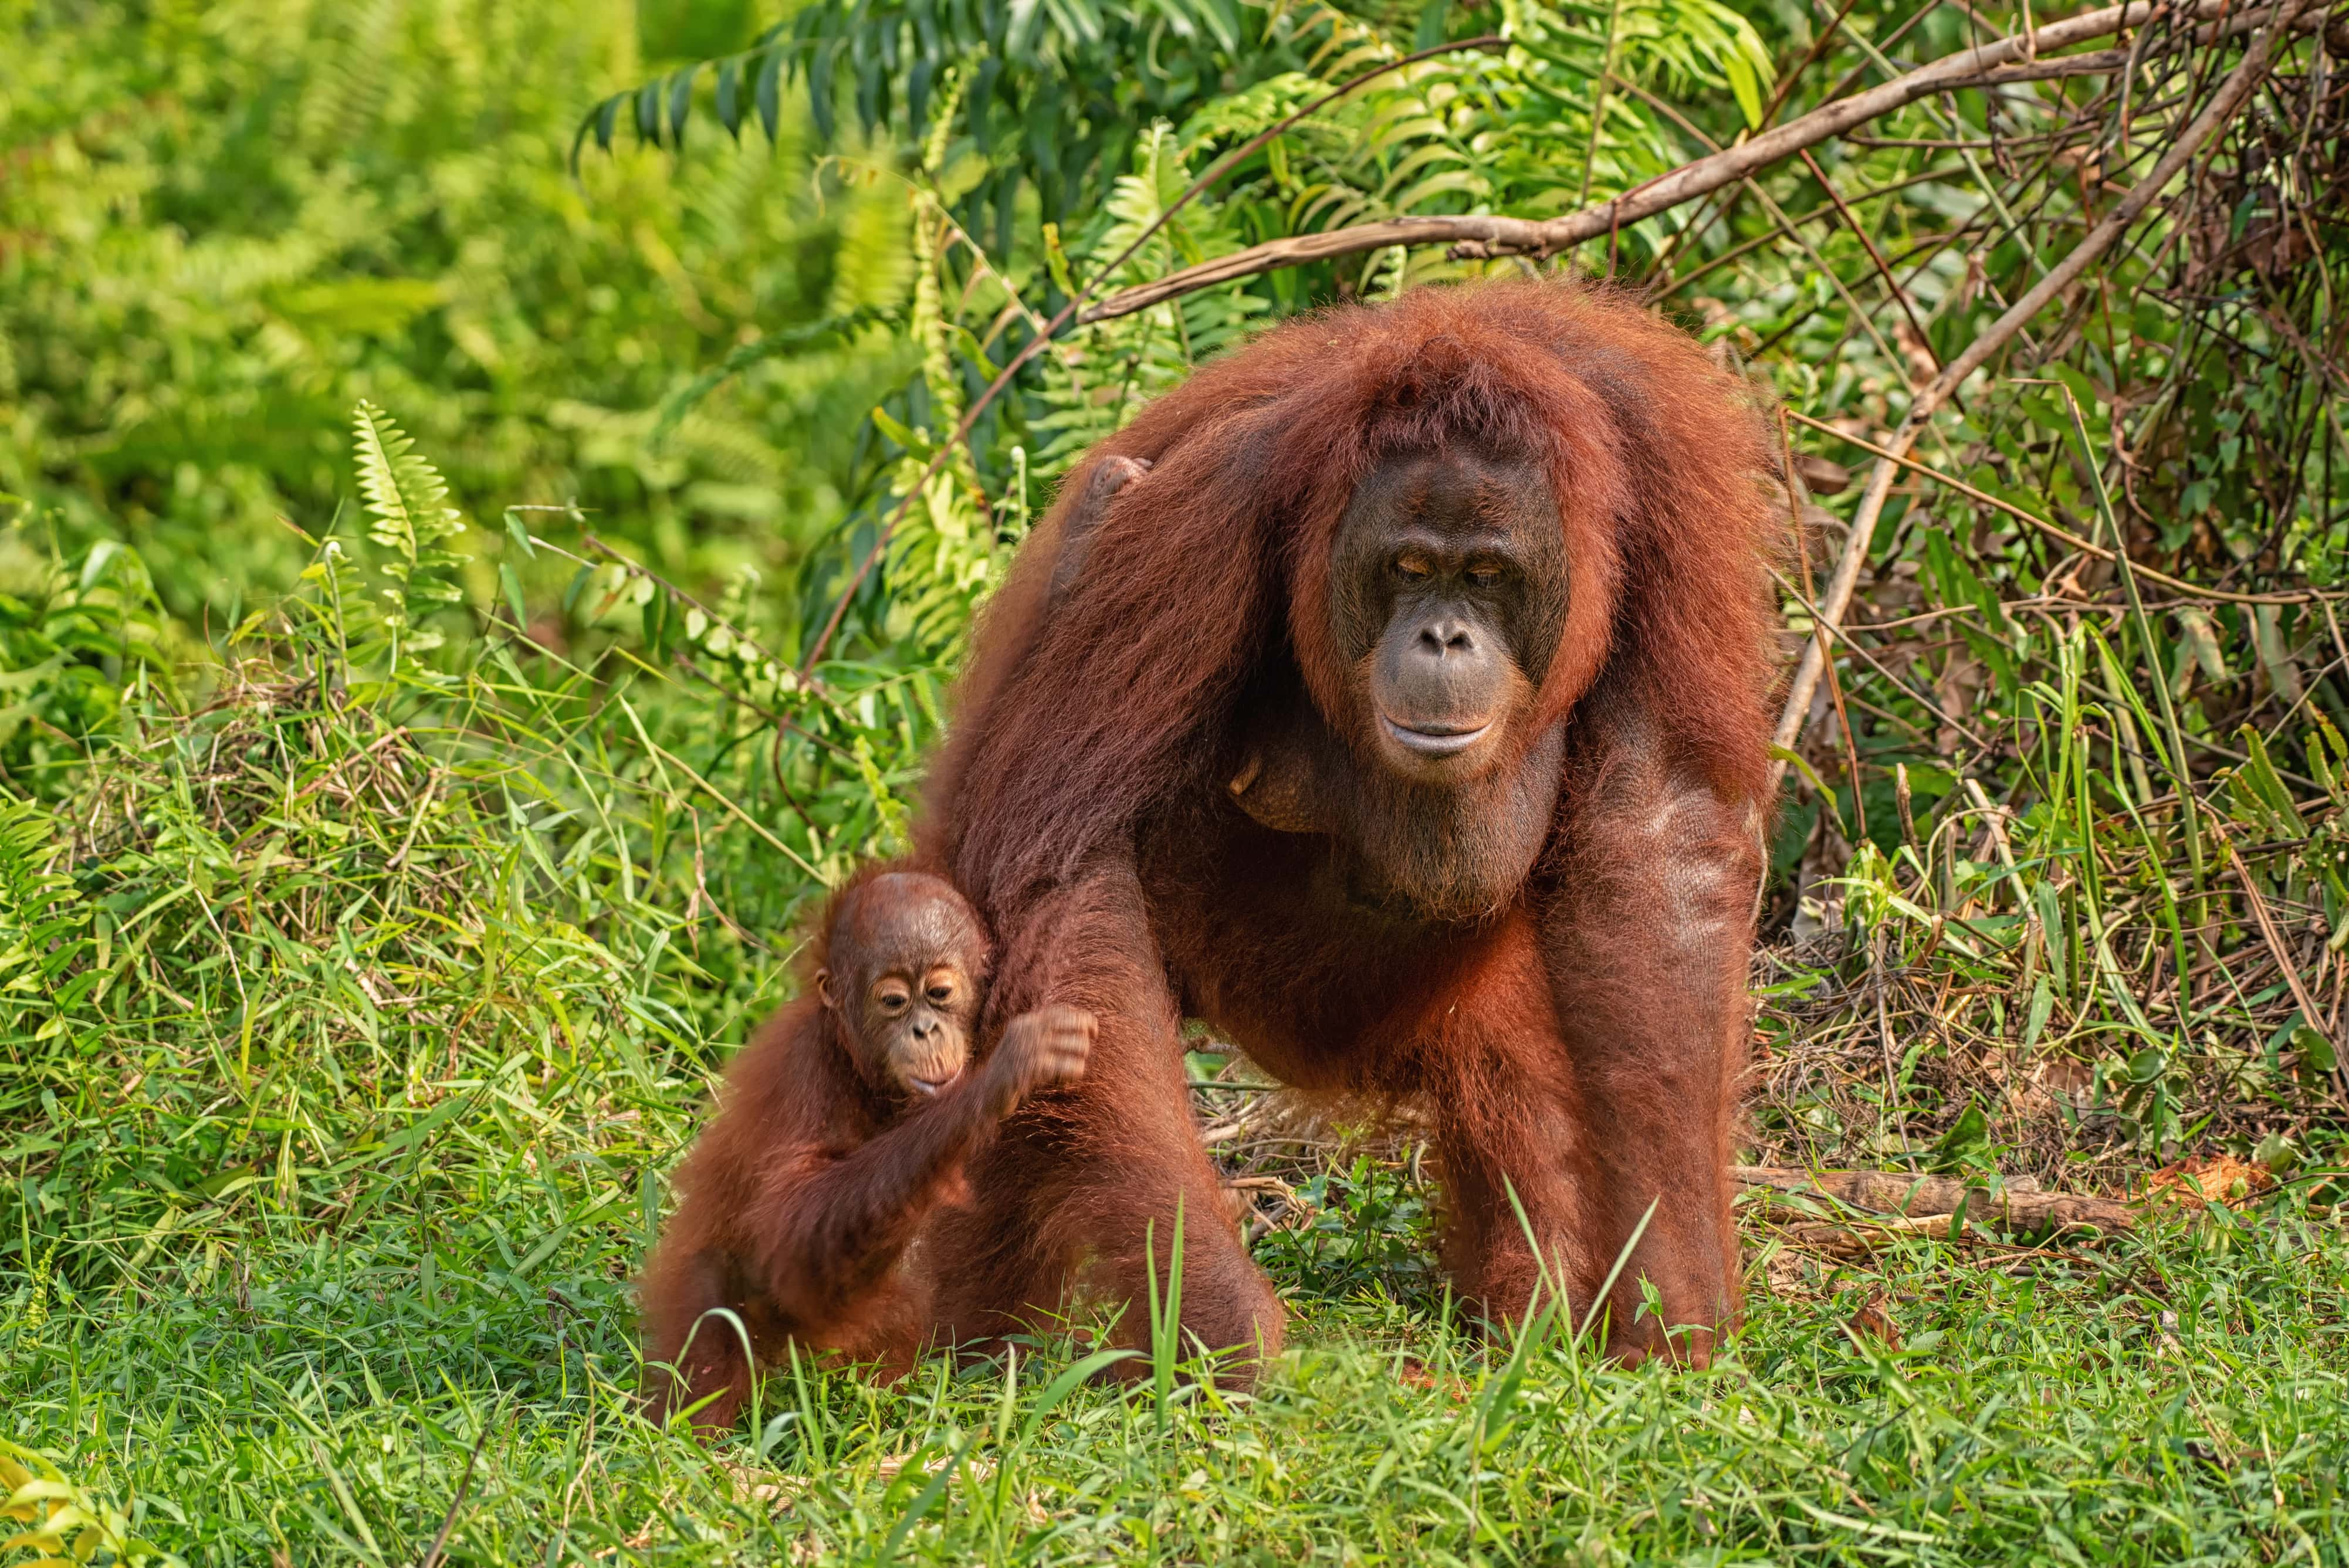 Natural parks in Borneo